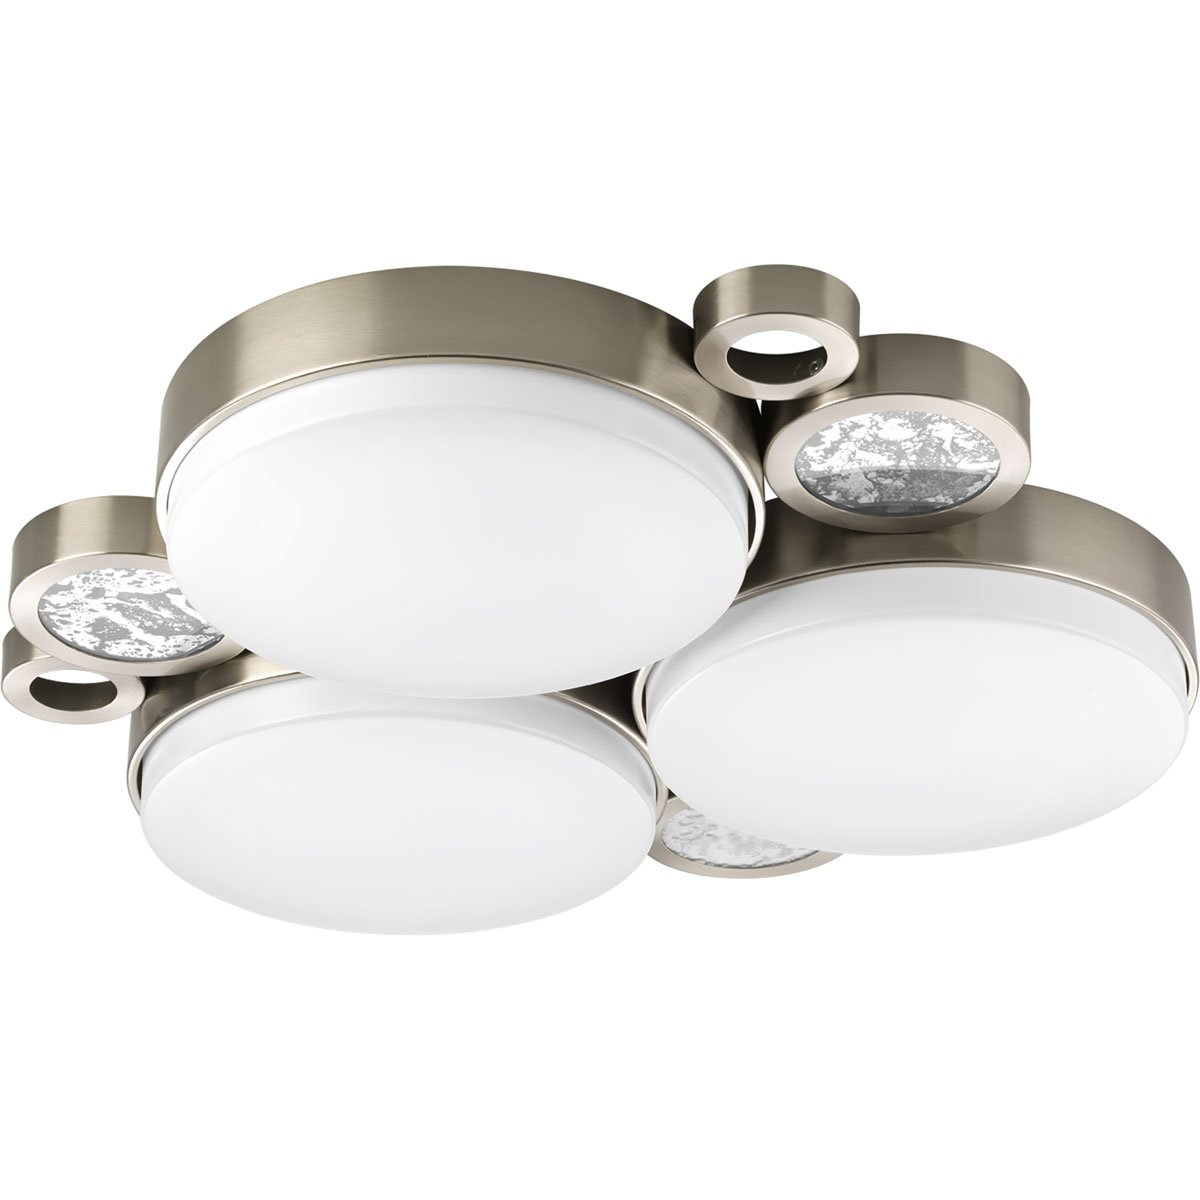 Progress Lighting P3747-0930K9 Bingo 3 Light LED Flush Mount Cluster with AC Module by Progress Lighting